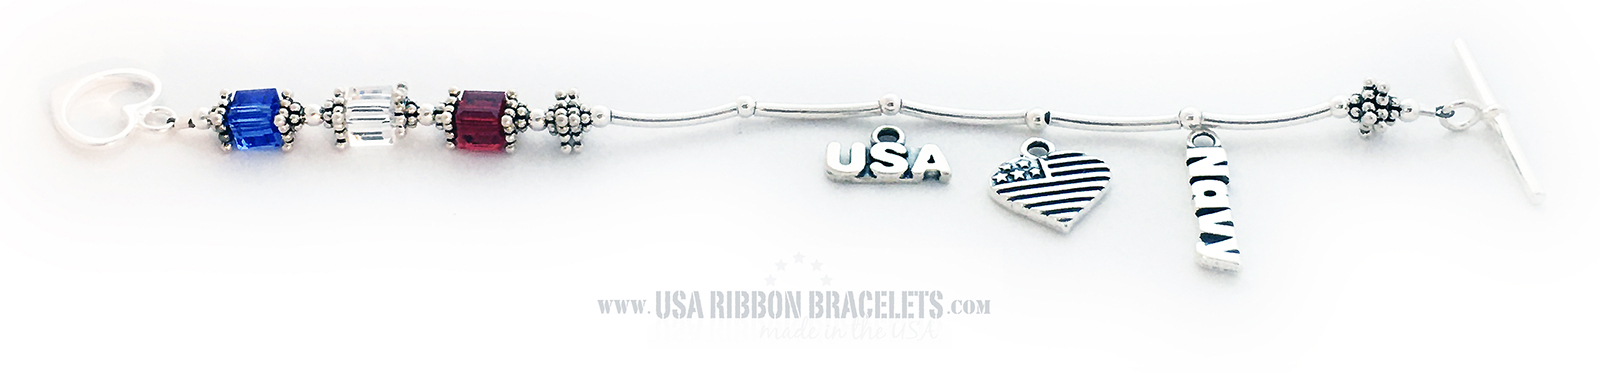 This USA-B2 Red White and Blue bracelet is shown with a Heart Toggle Clasp. They added 3 charms to their order: USA Charm, Heart Flag Charm and a Navy Charm.